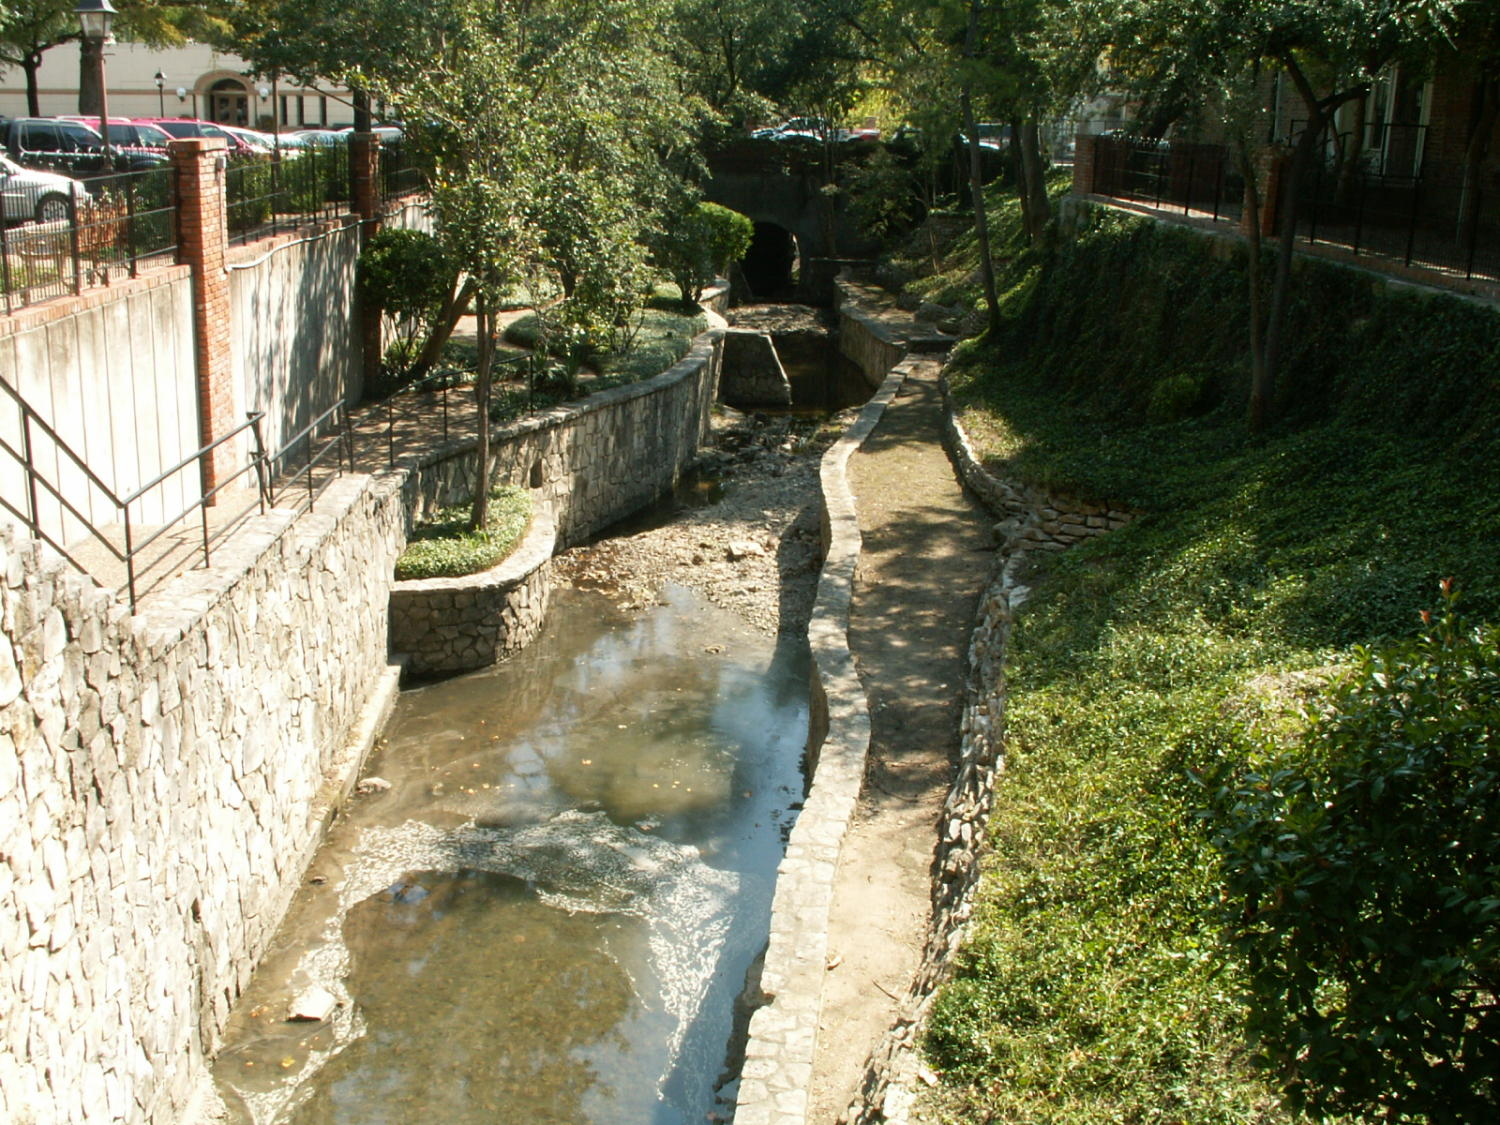 [Small Creek], Photograph of a small creek filled with dirty water in between two stone walls by a parking lot. Cars are visible to the left.,